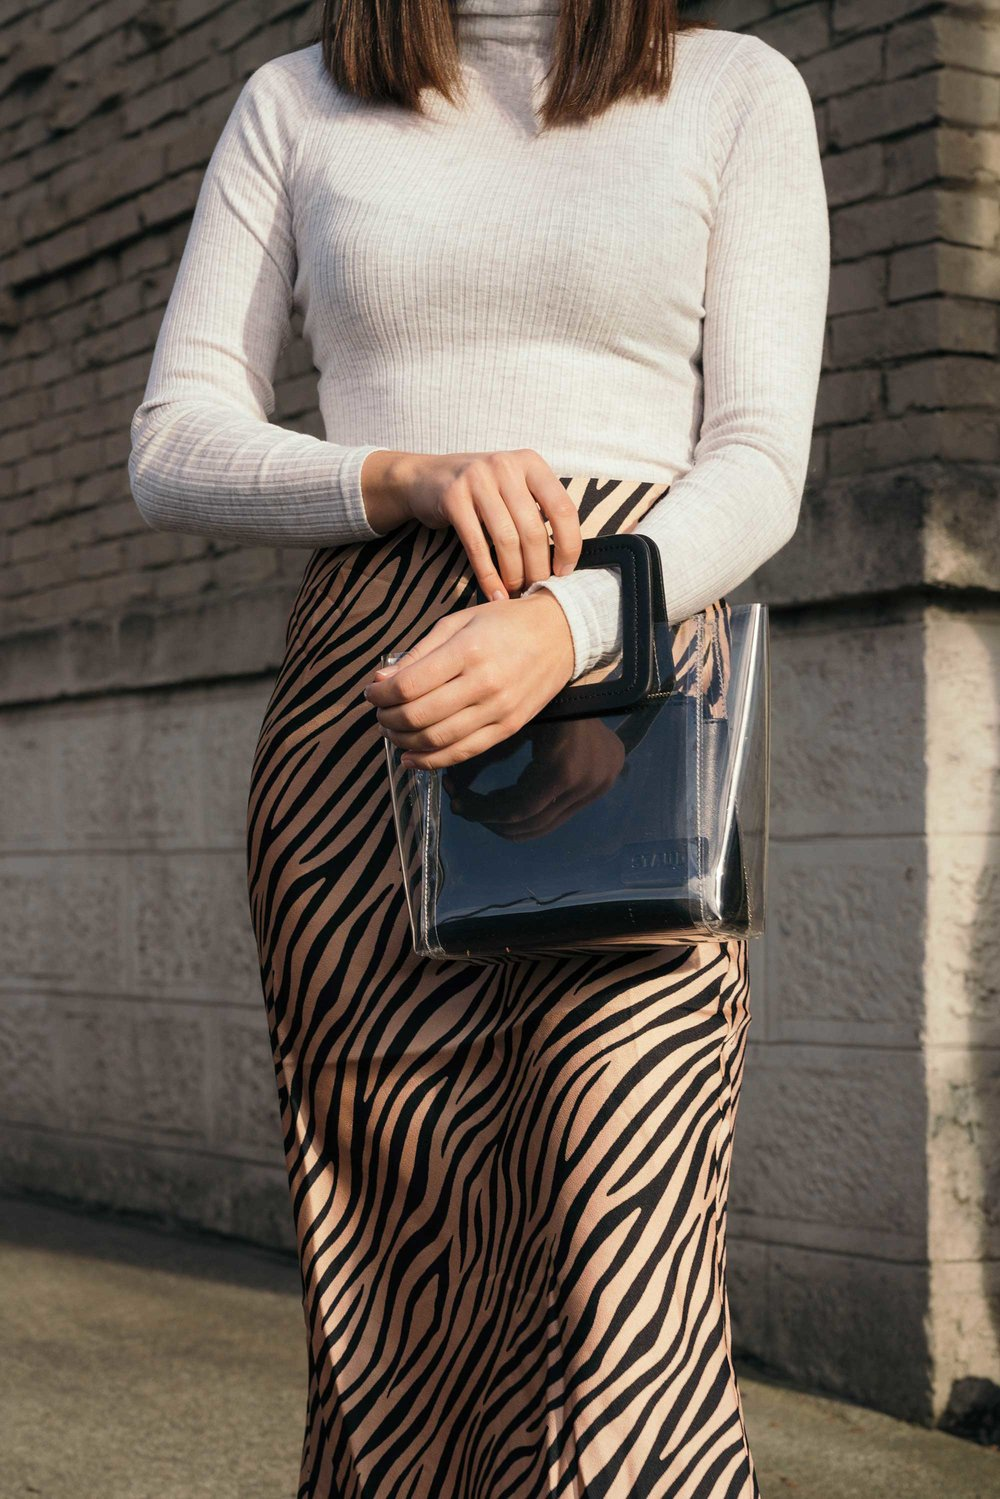 Sarah Butler of Sarah Styles Seattle wears Club Monaco Julie Rib Turtleneck Sweater, Tiger Print Midi Skirt, and Staud Mini Shirley Transparent Handbag | @sarahchristine5.jpg